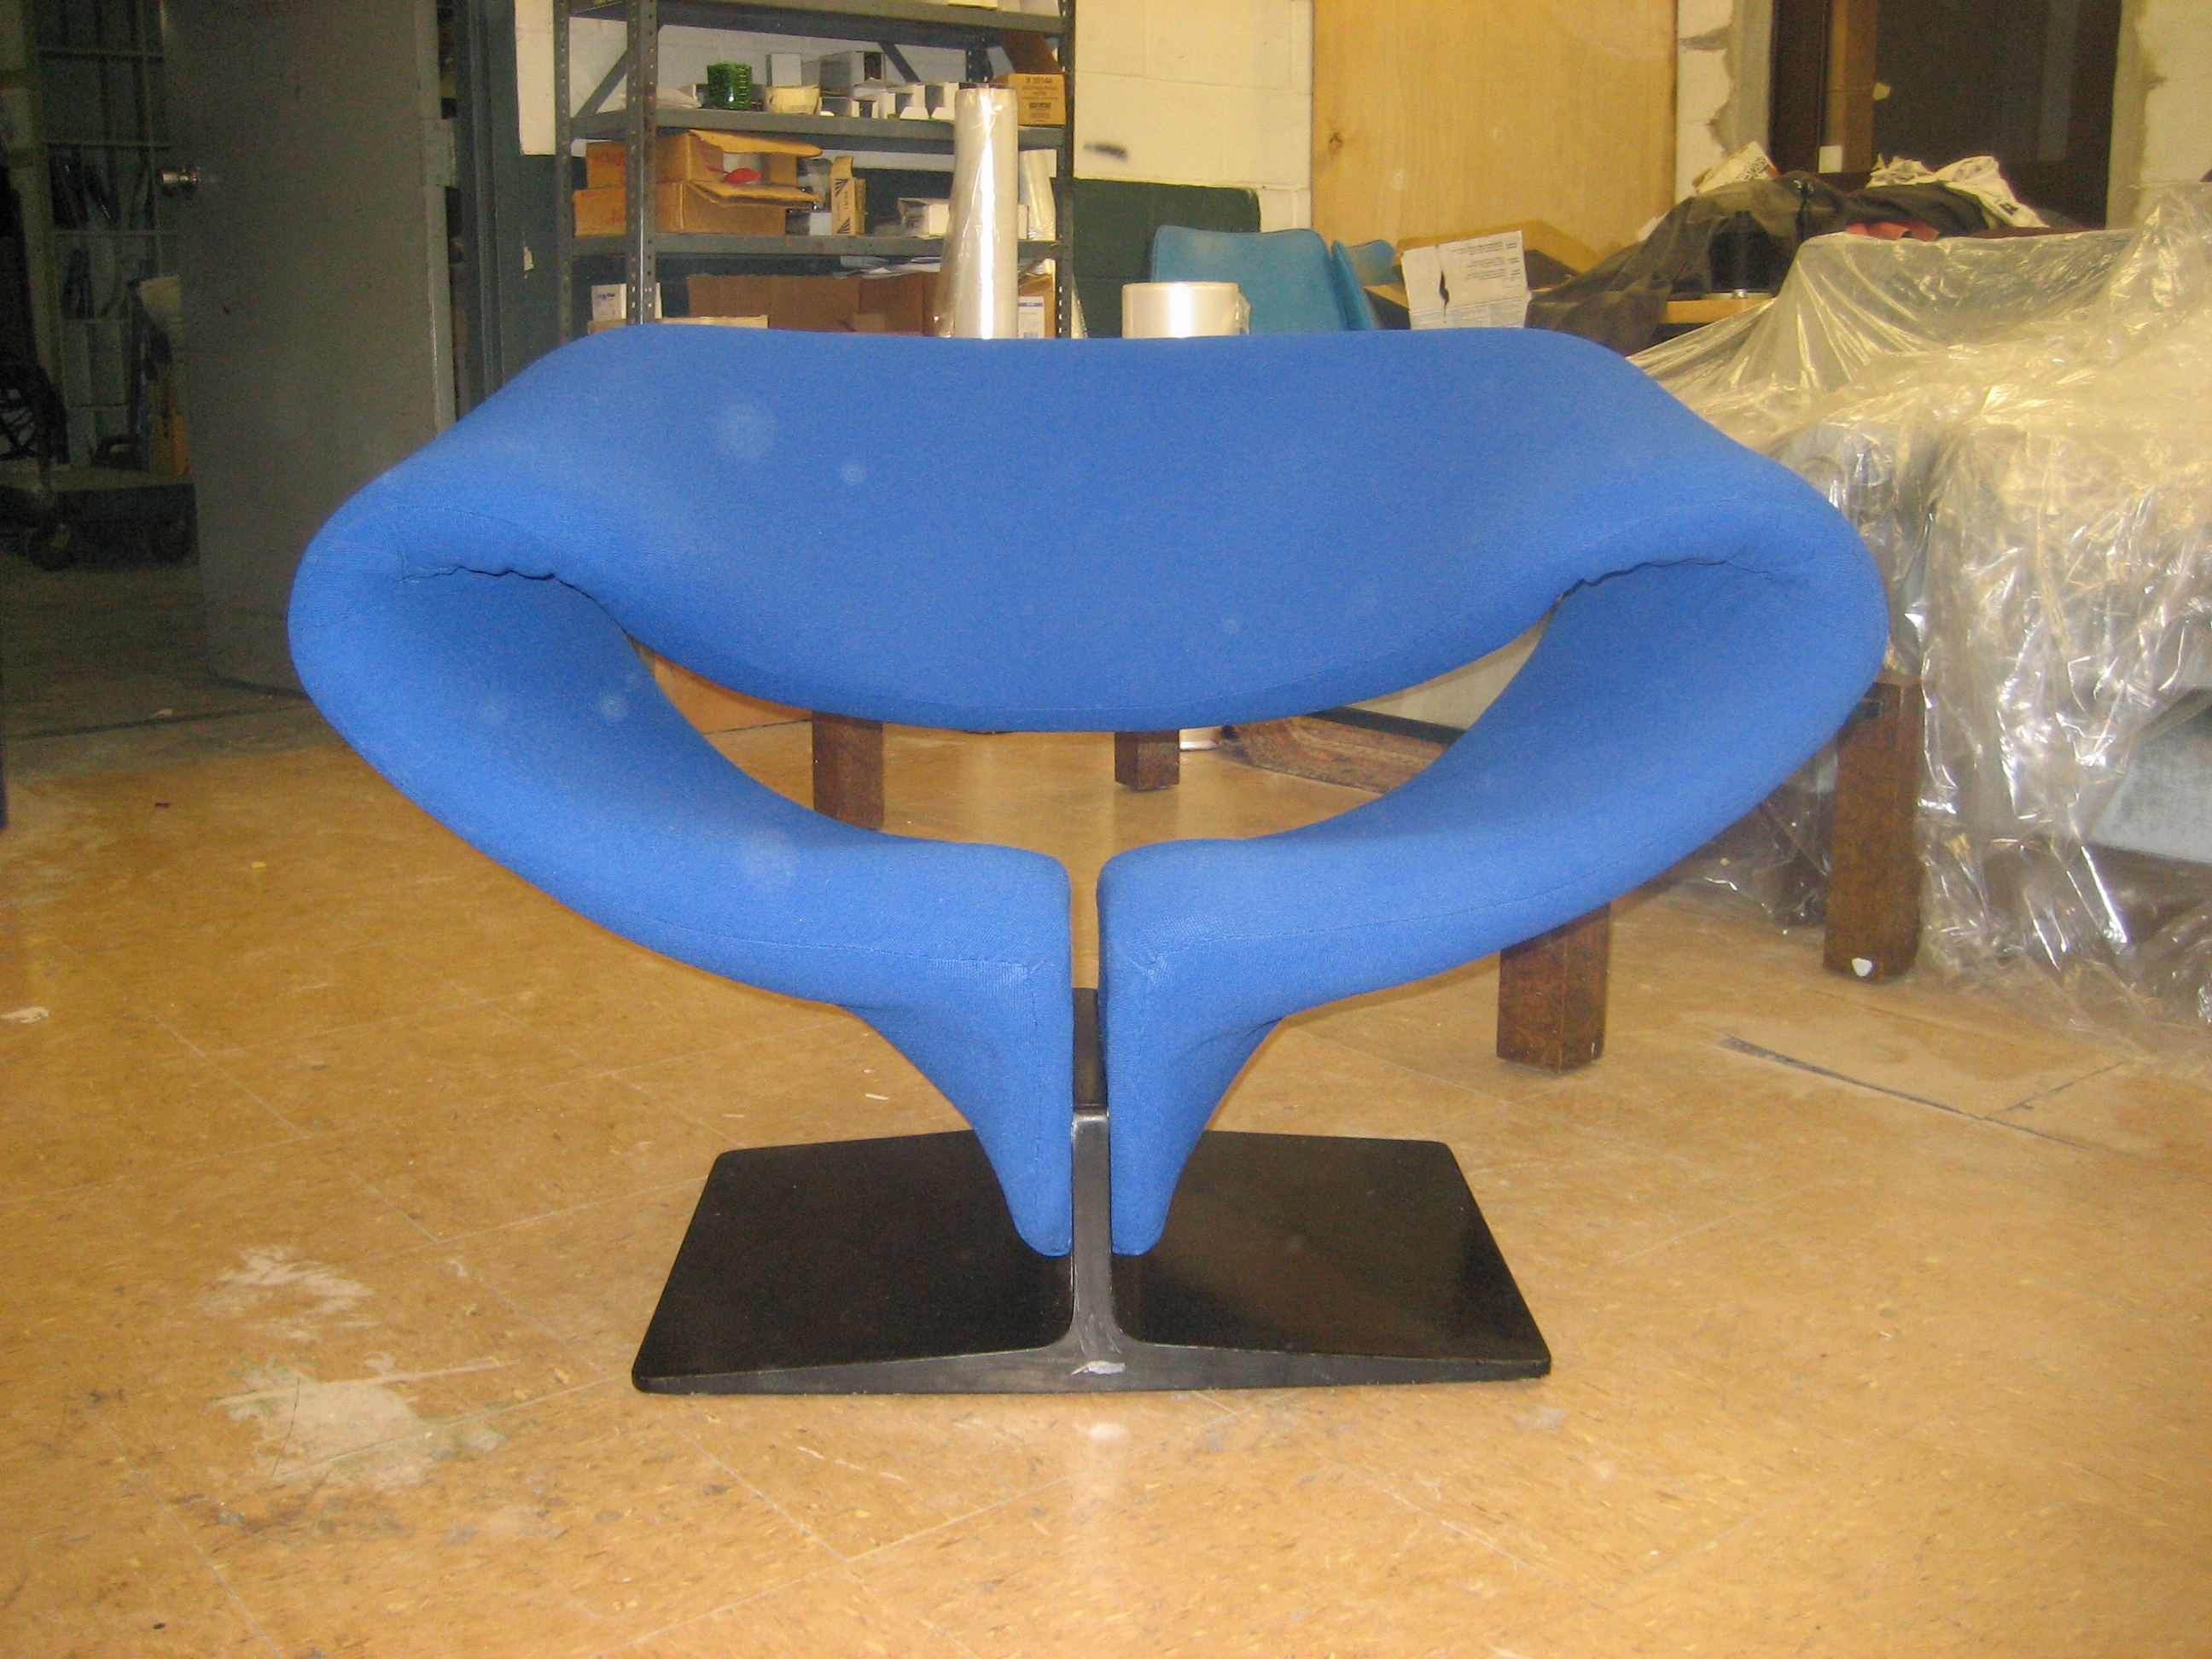 Pierre Paulin Ribbon Chair AFTER reupholstery